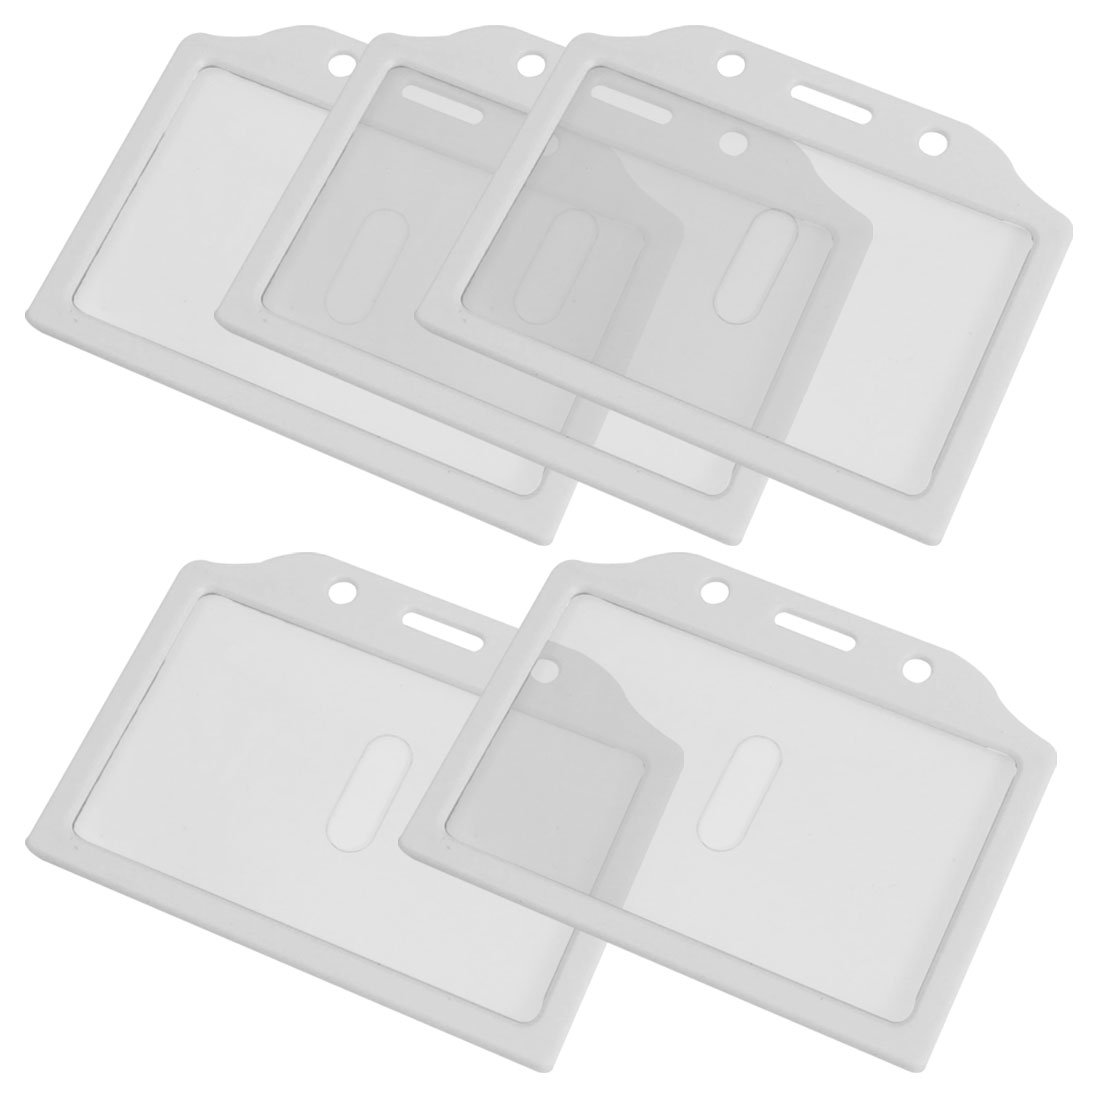 compare prices on plastic business card holder online shopping